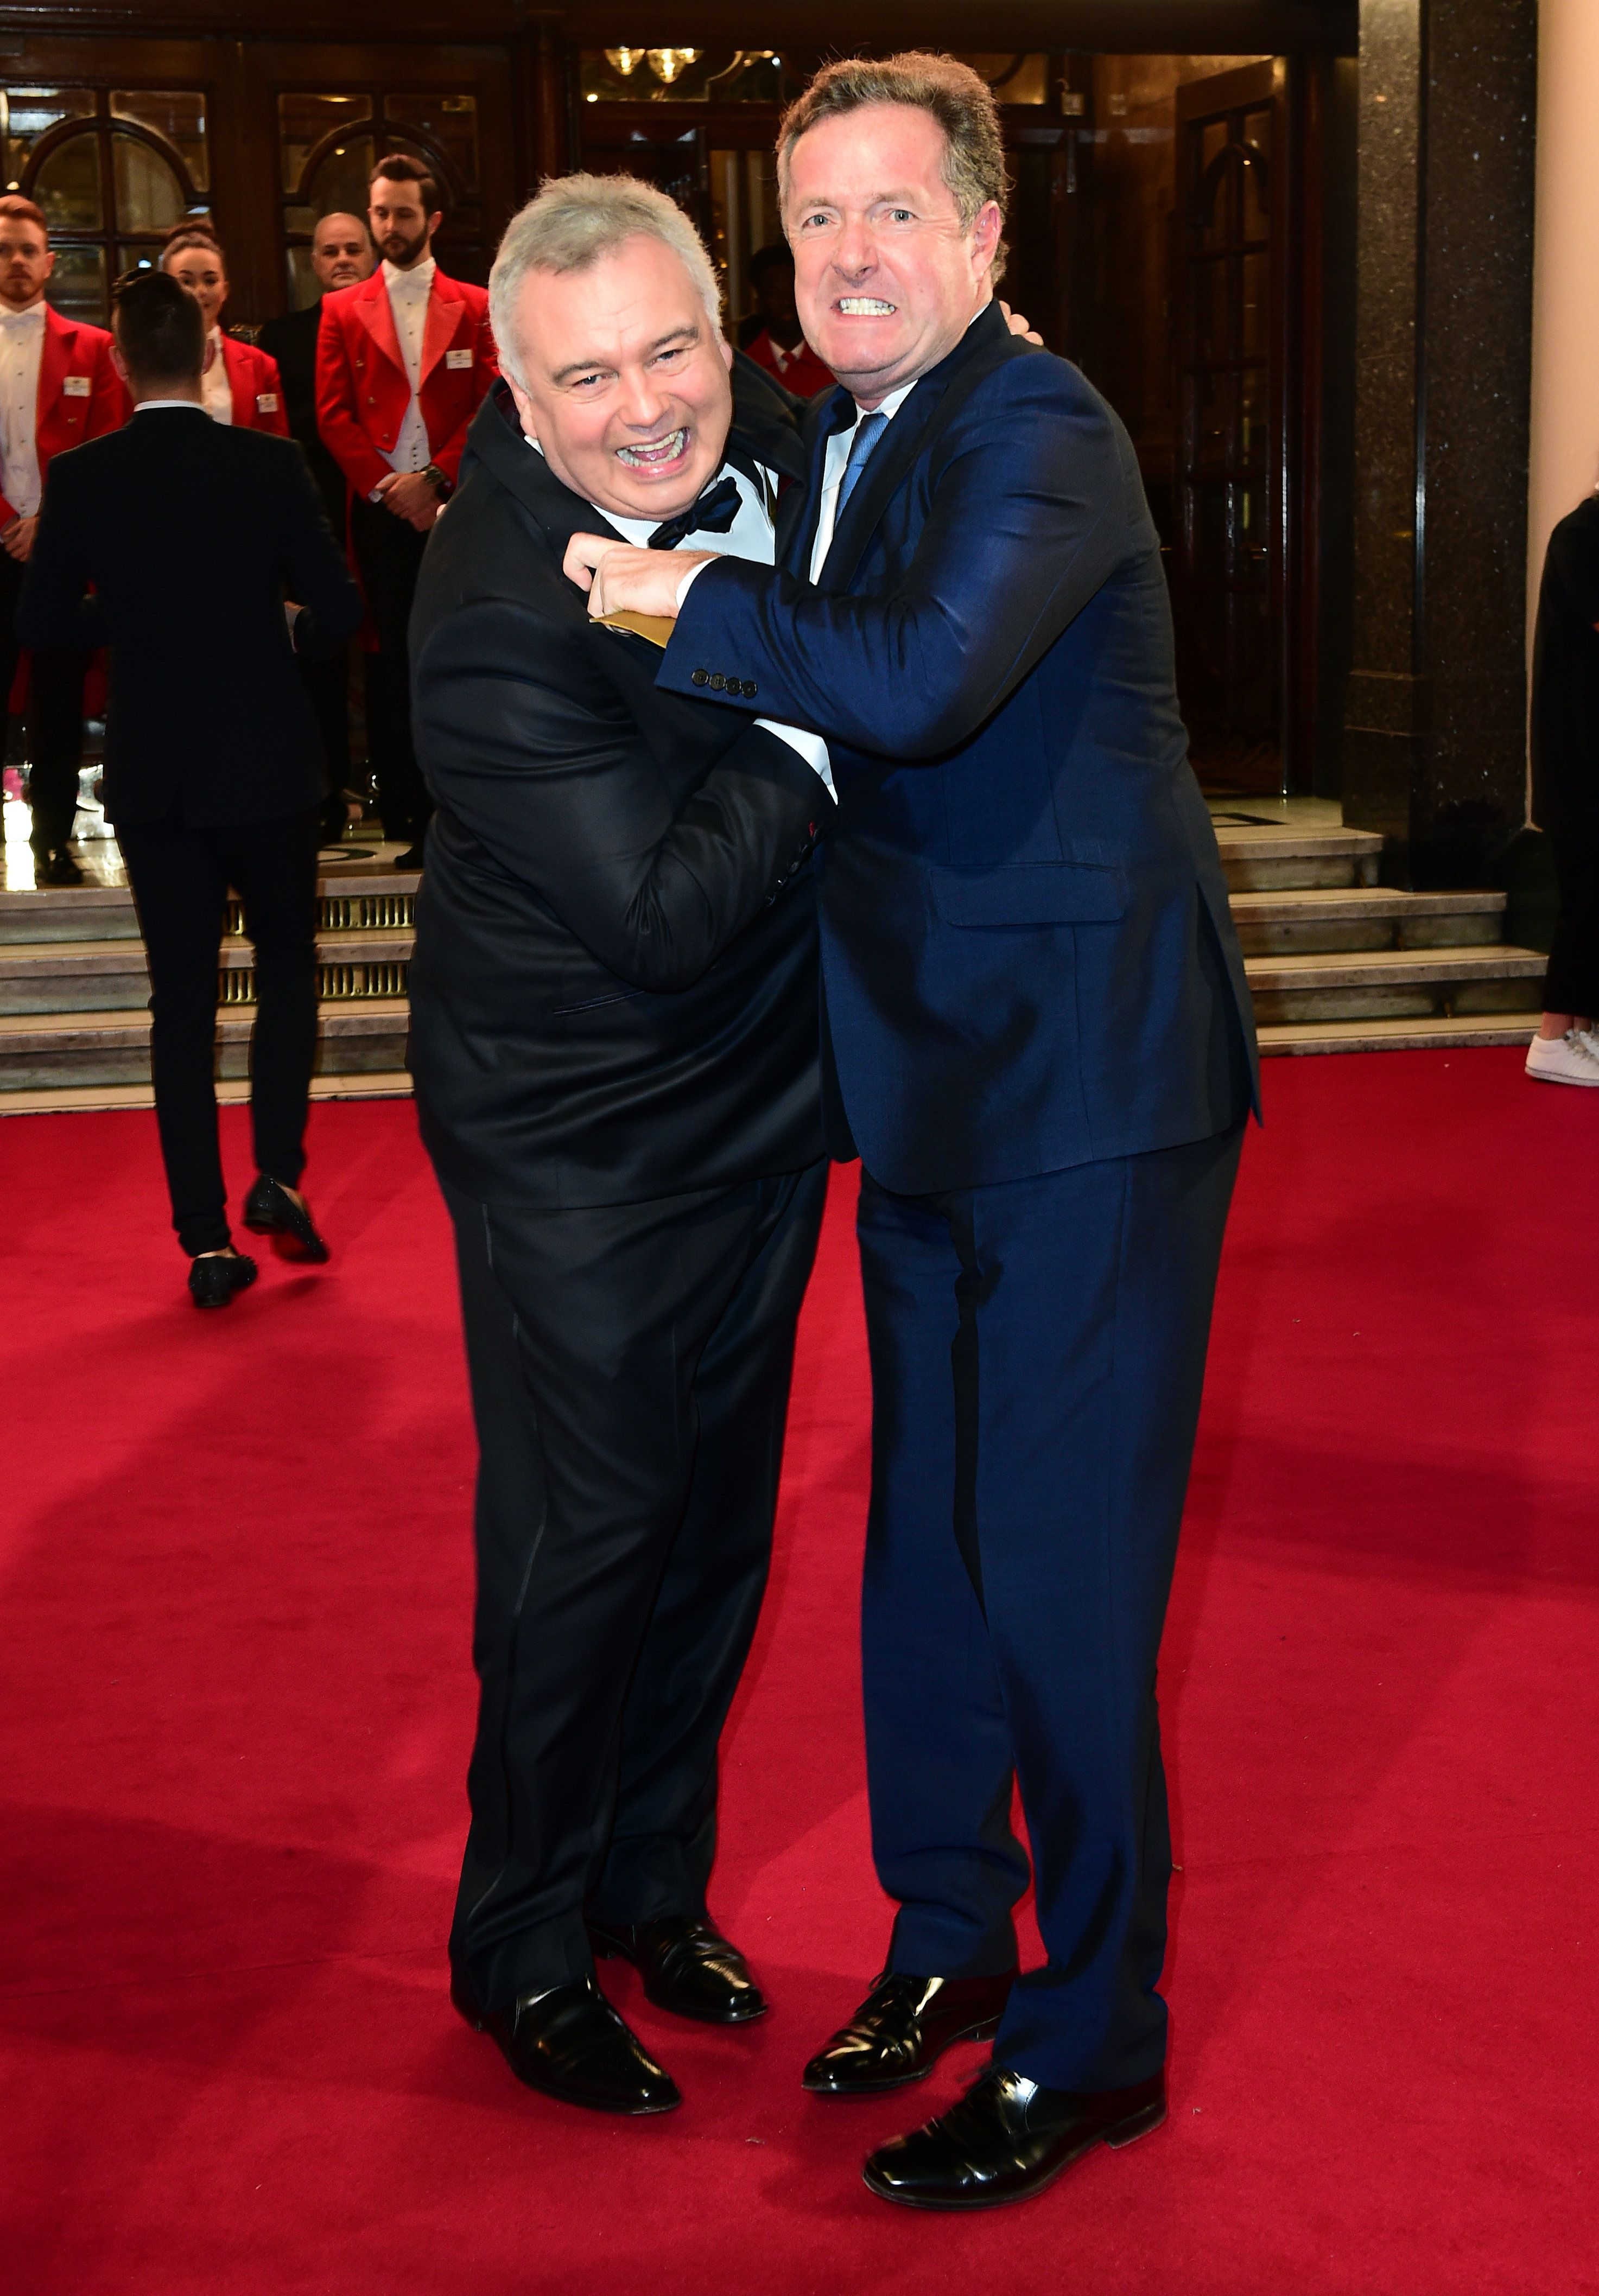 Eamonn Holmes and Piers